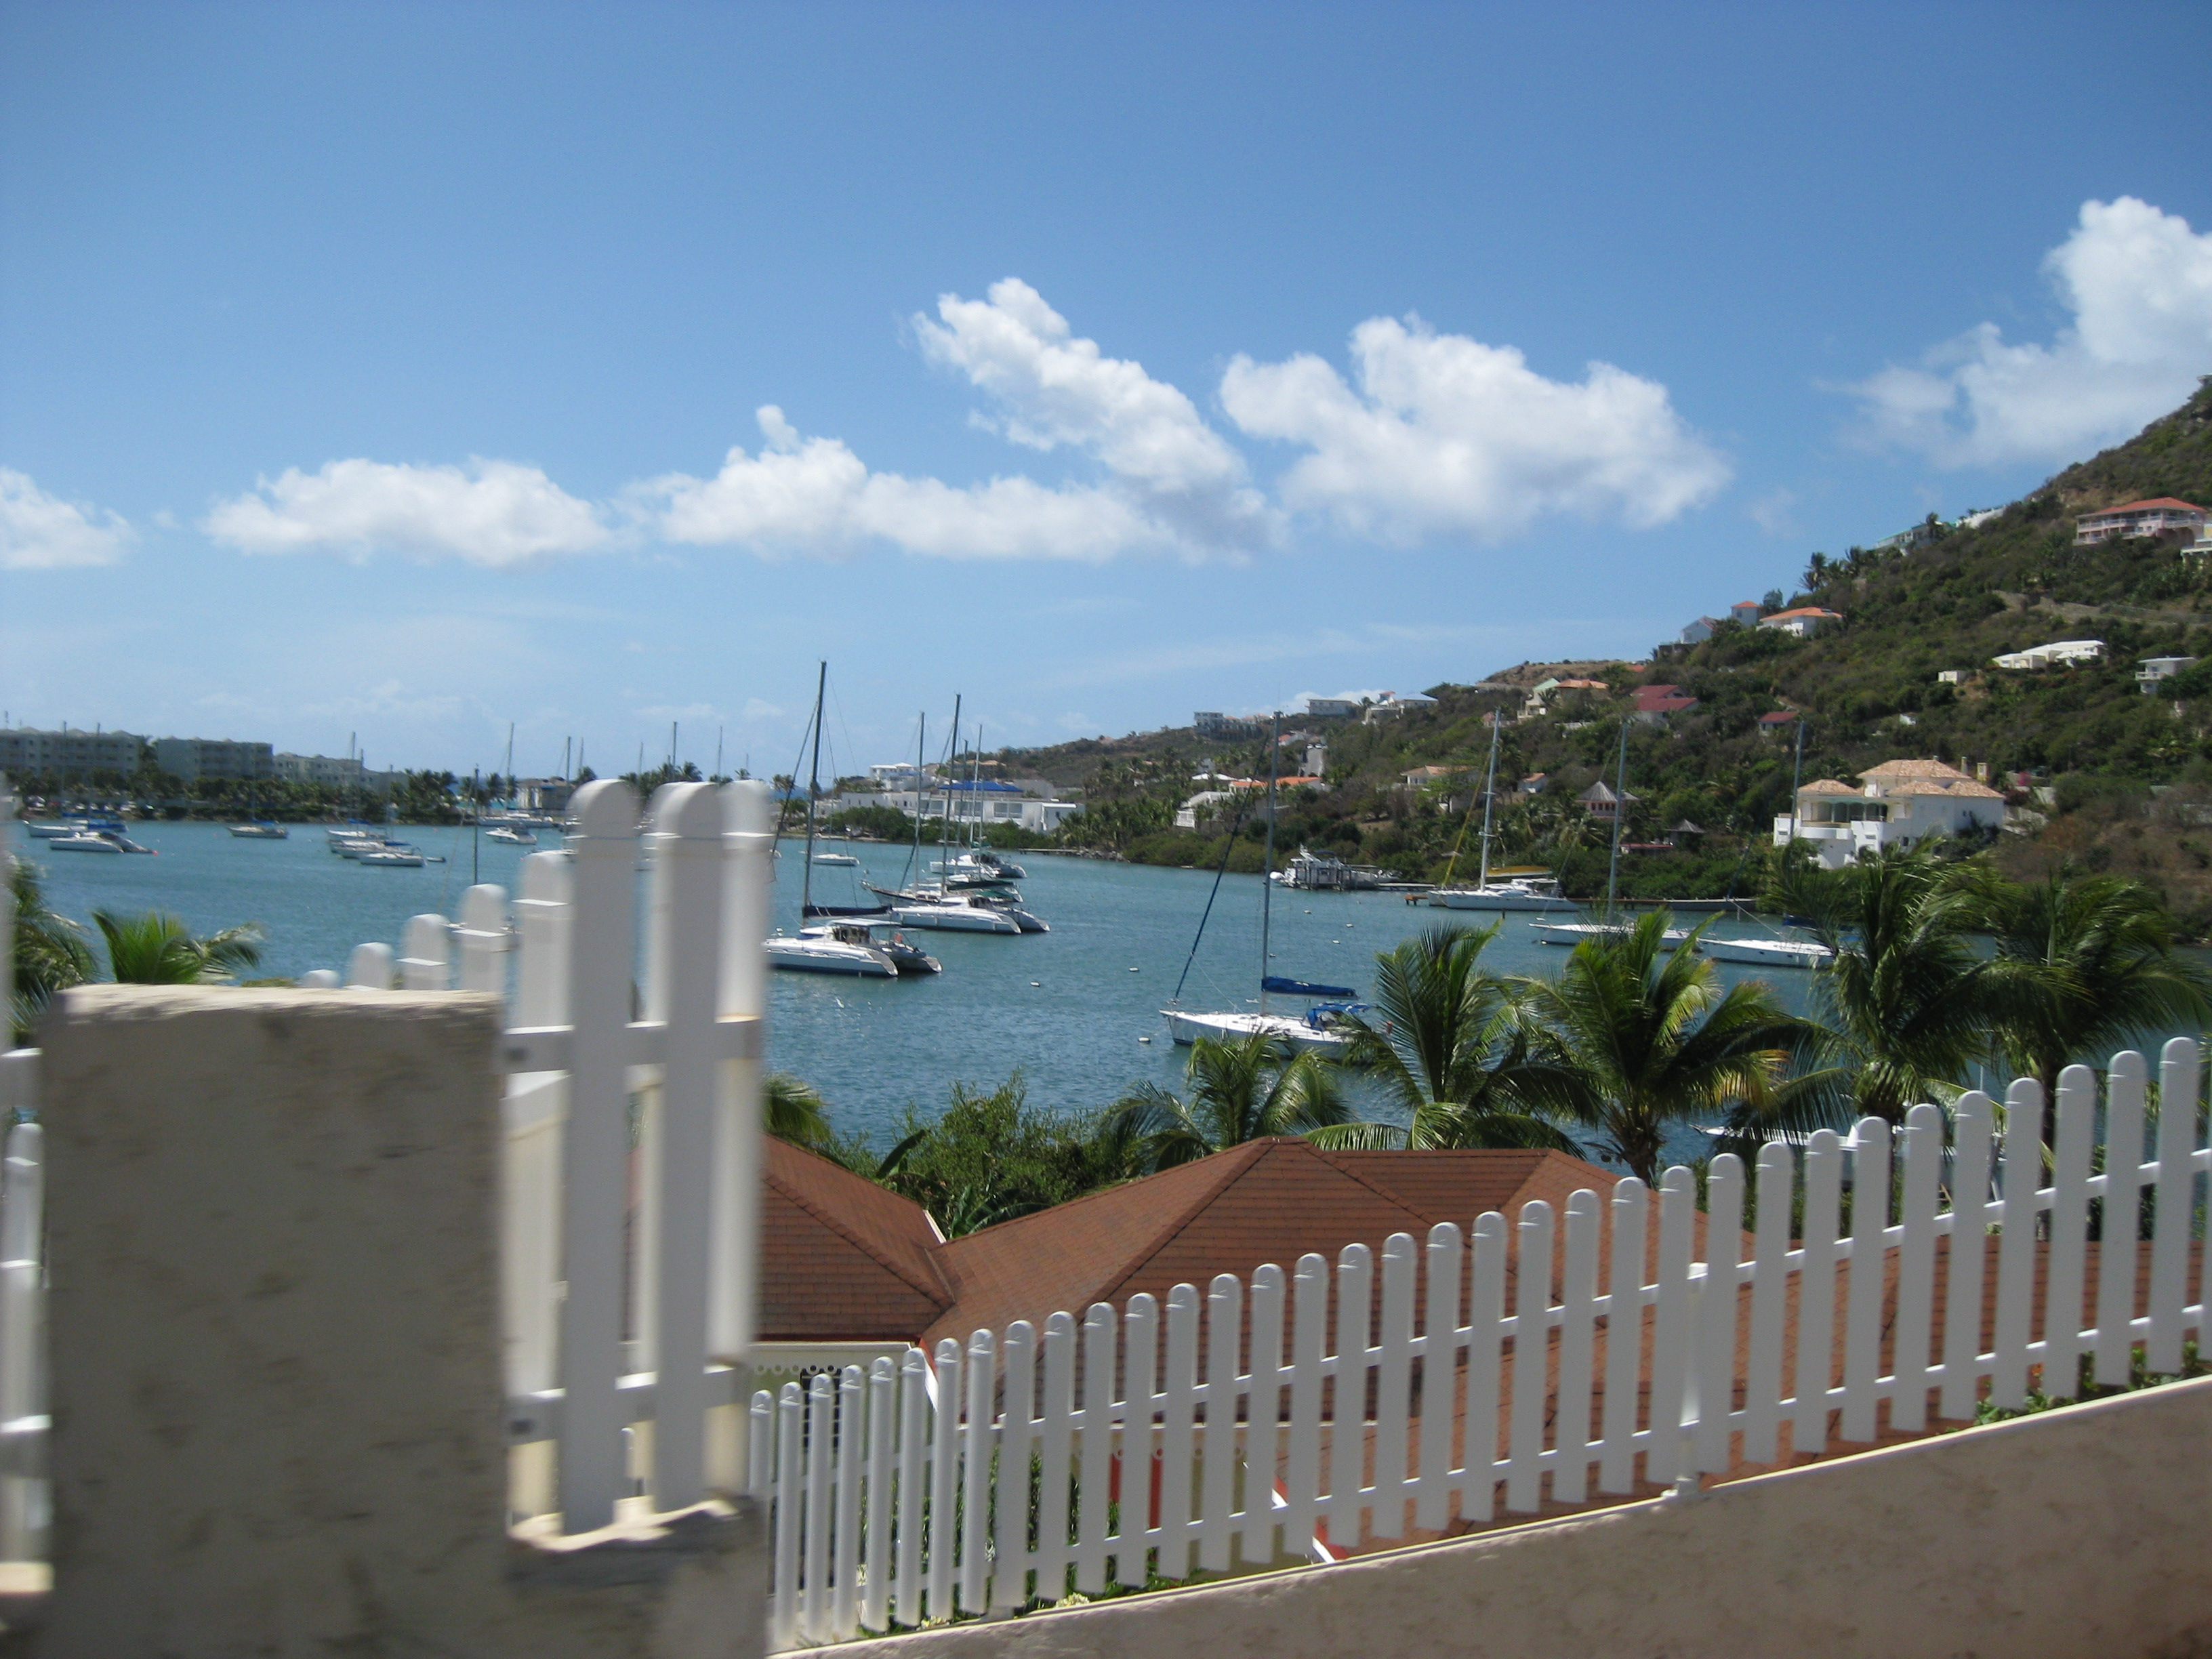 View on St. Maarten